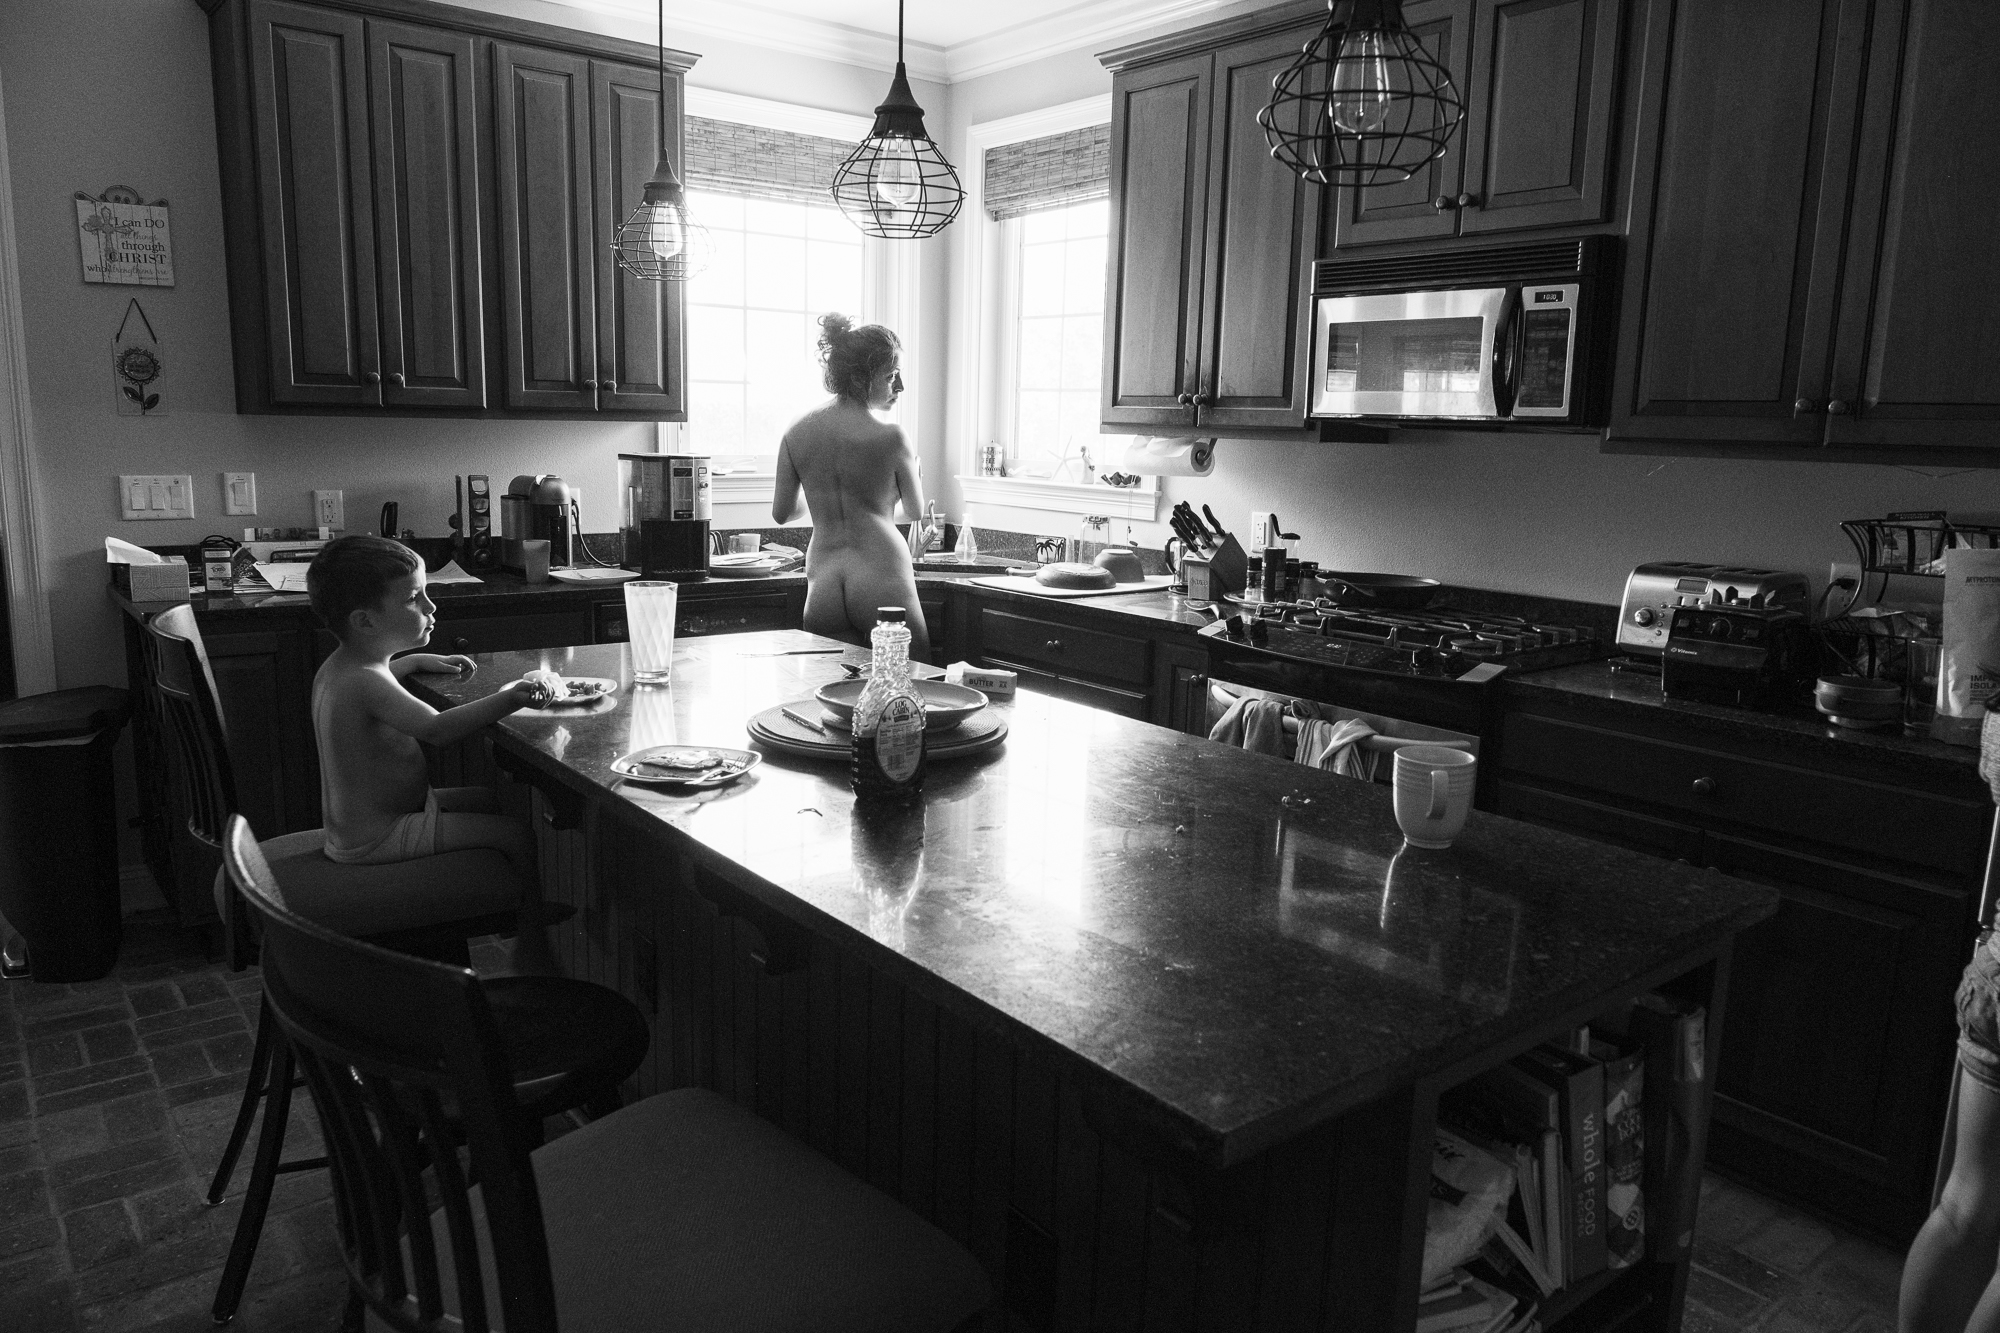 20170420-Hannah-a-day-in-the-life-X-Pro2-0623-Edit.jpg